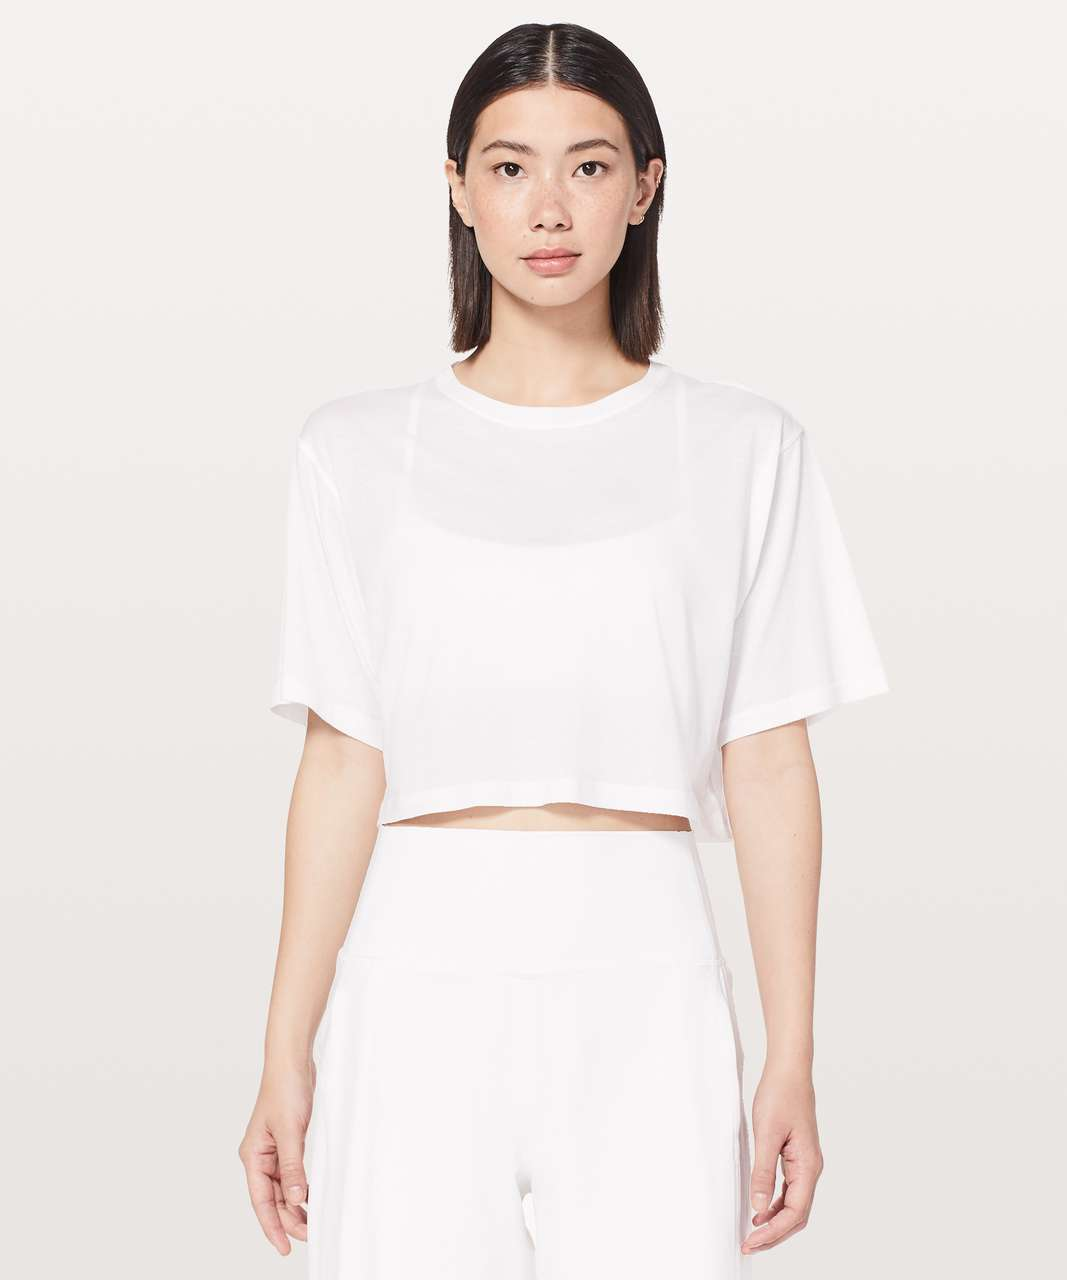 Lululemon Cortes Crop Tee *Light - White